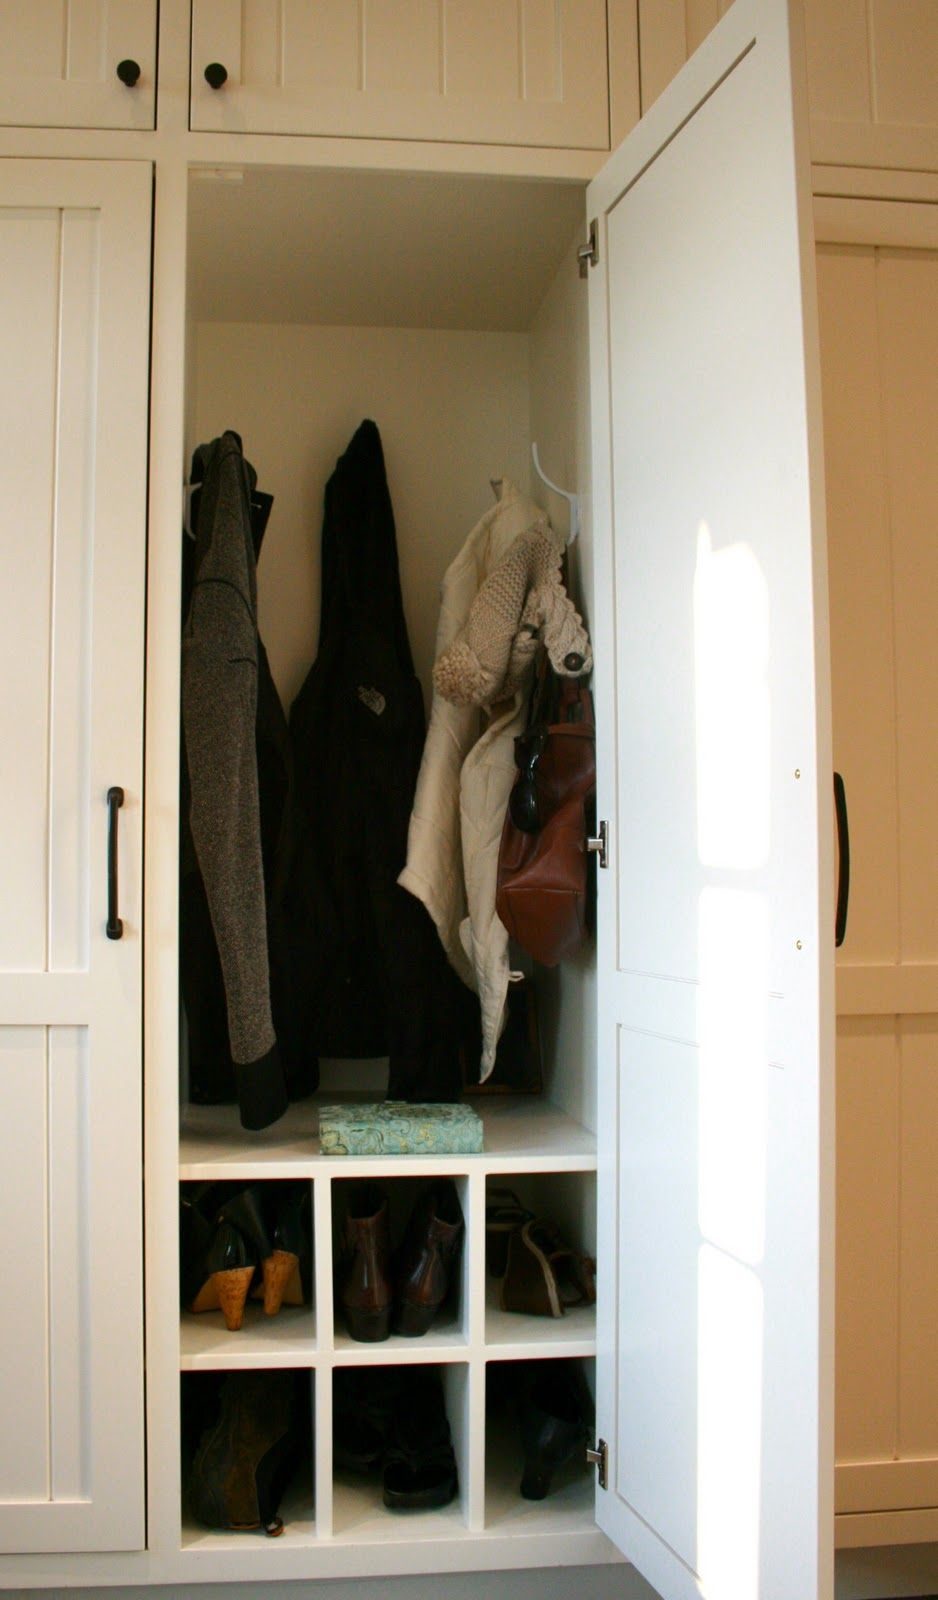 Design Your Own Laundry Room: The Mudroom. For A Large Family.